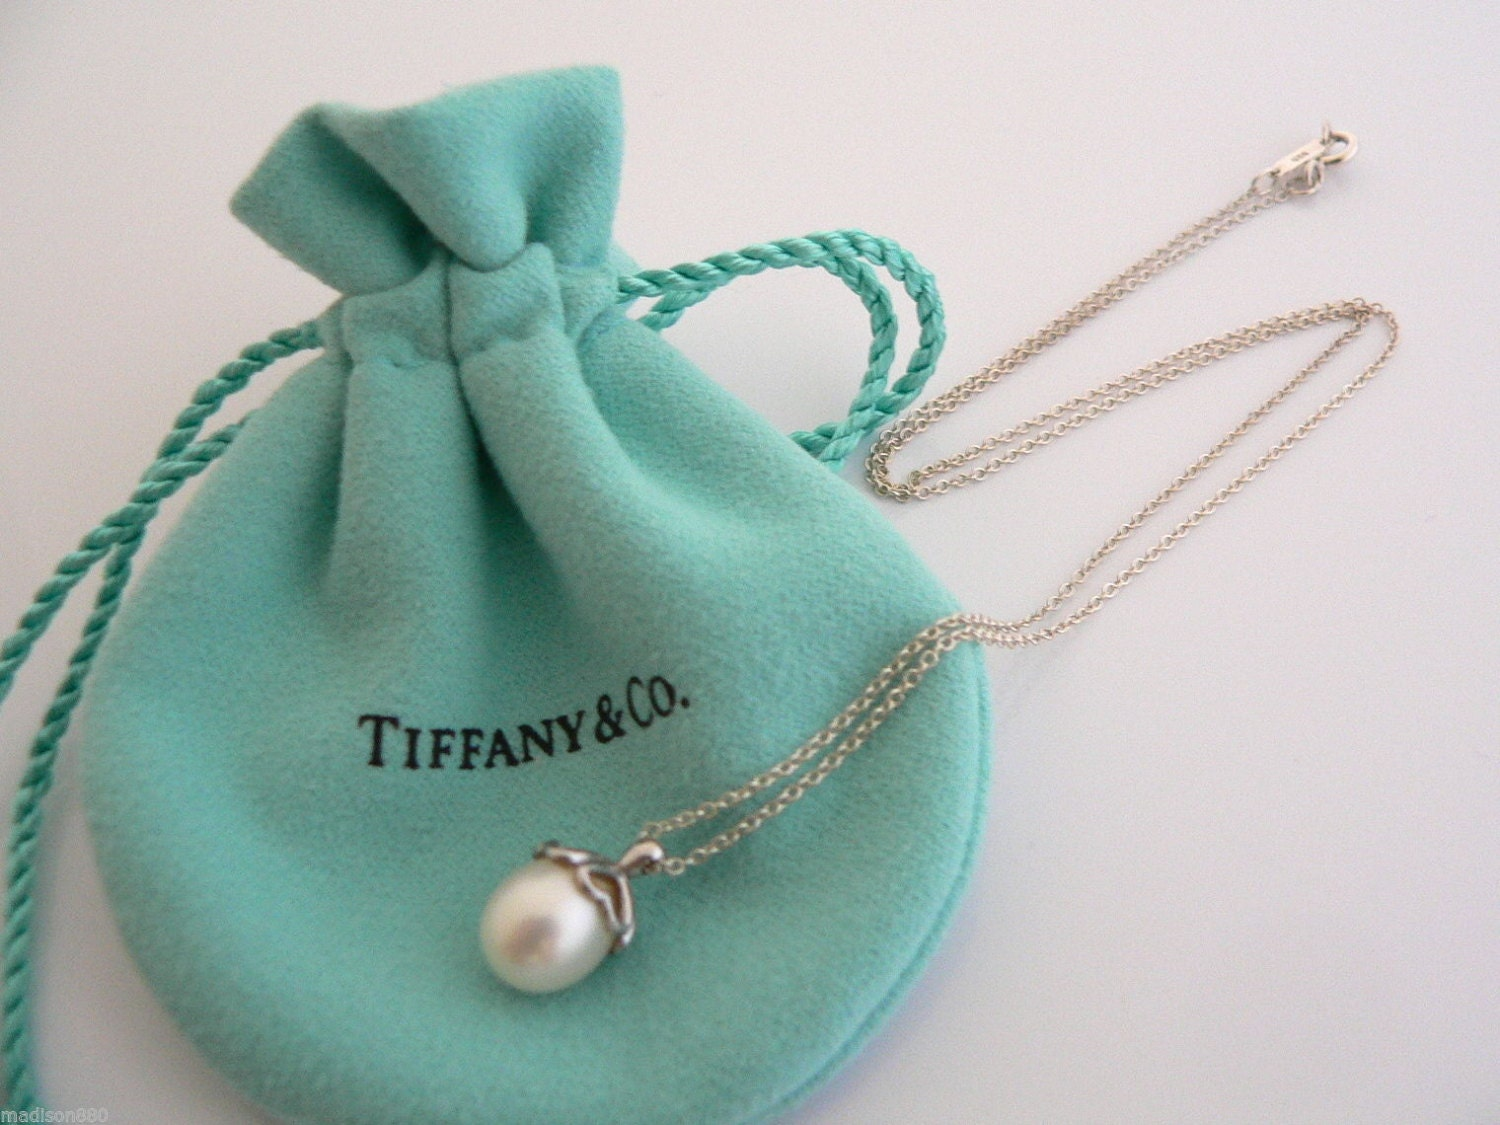 Tiffany co sterling silver heart cap pearl necklace pendant zoom audiocablefo Light gallery